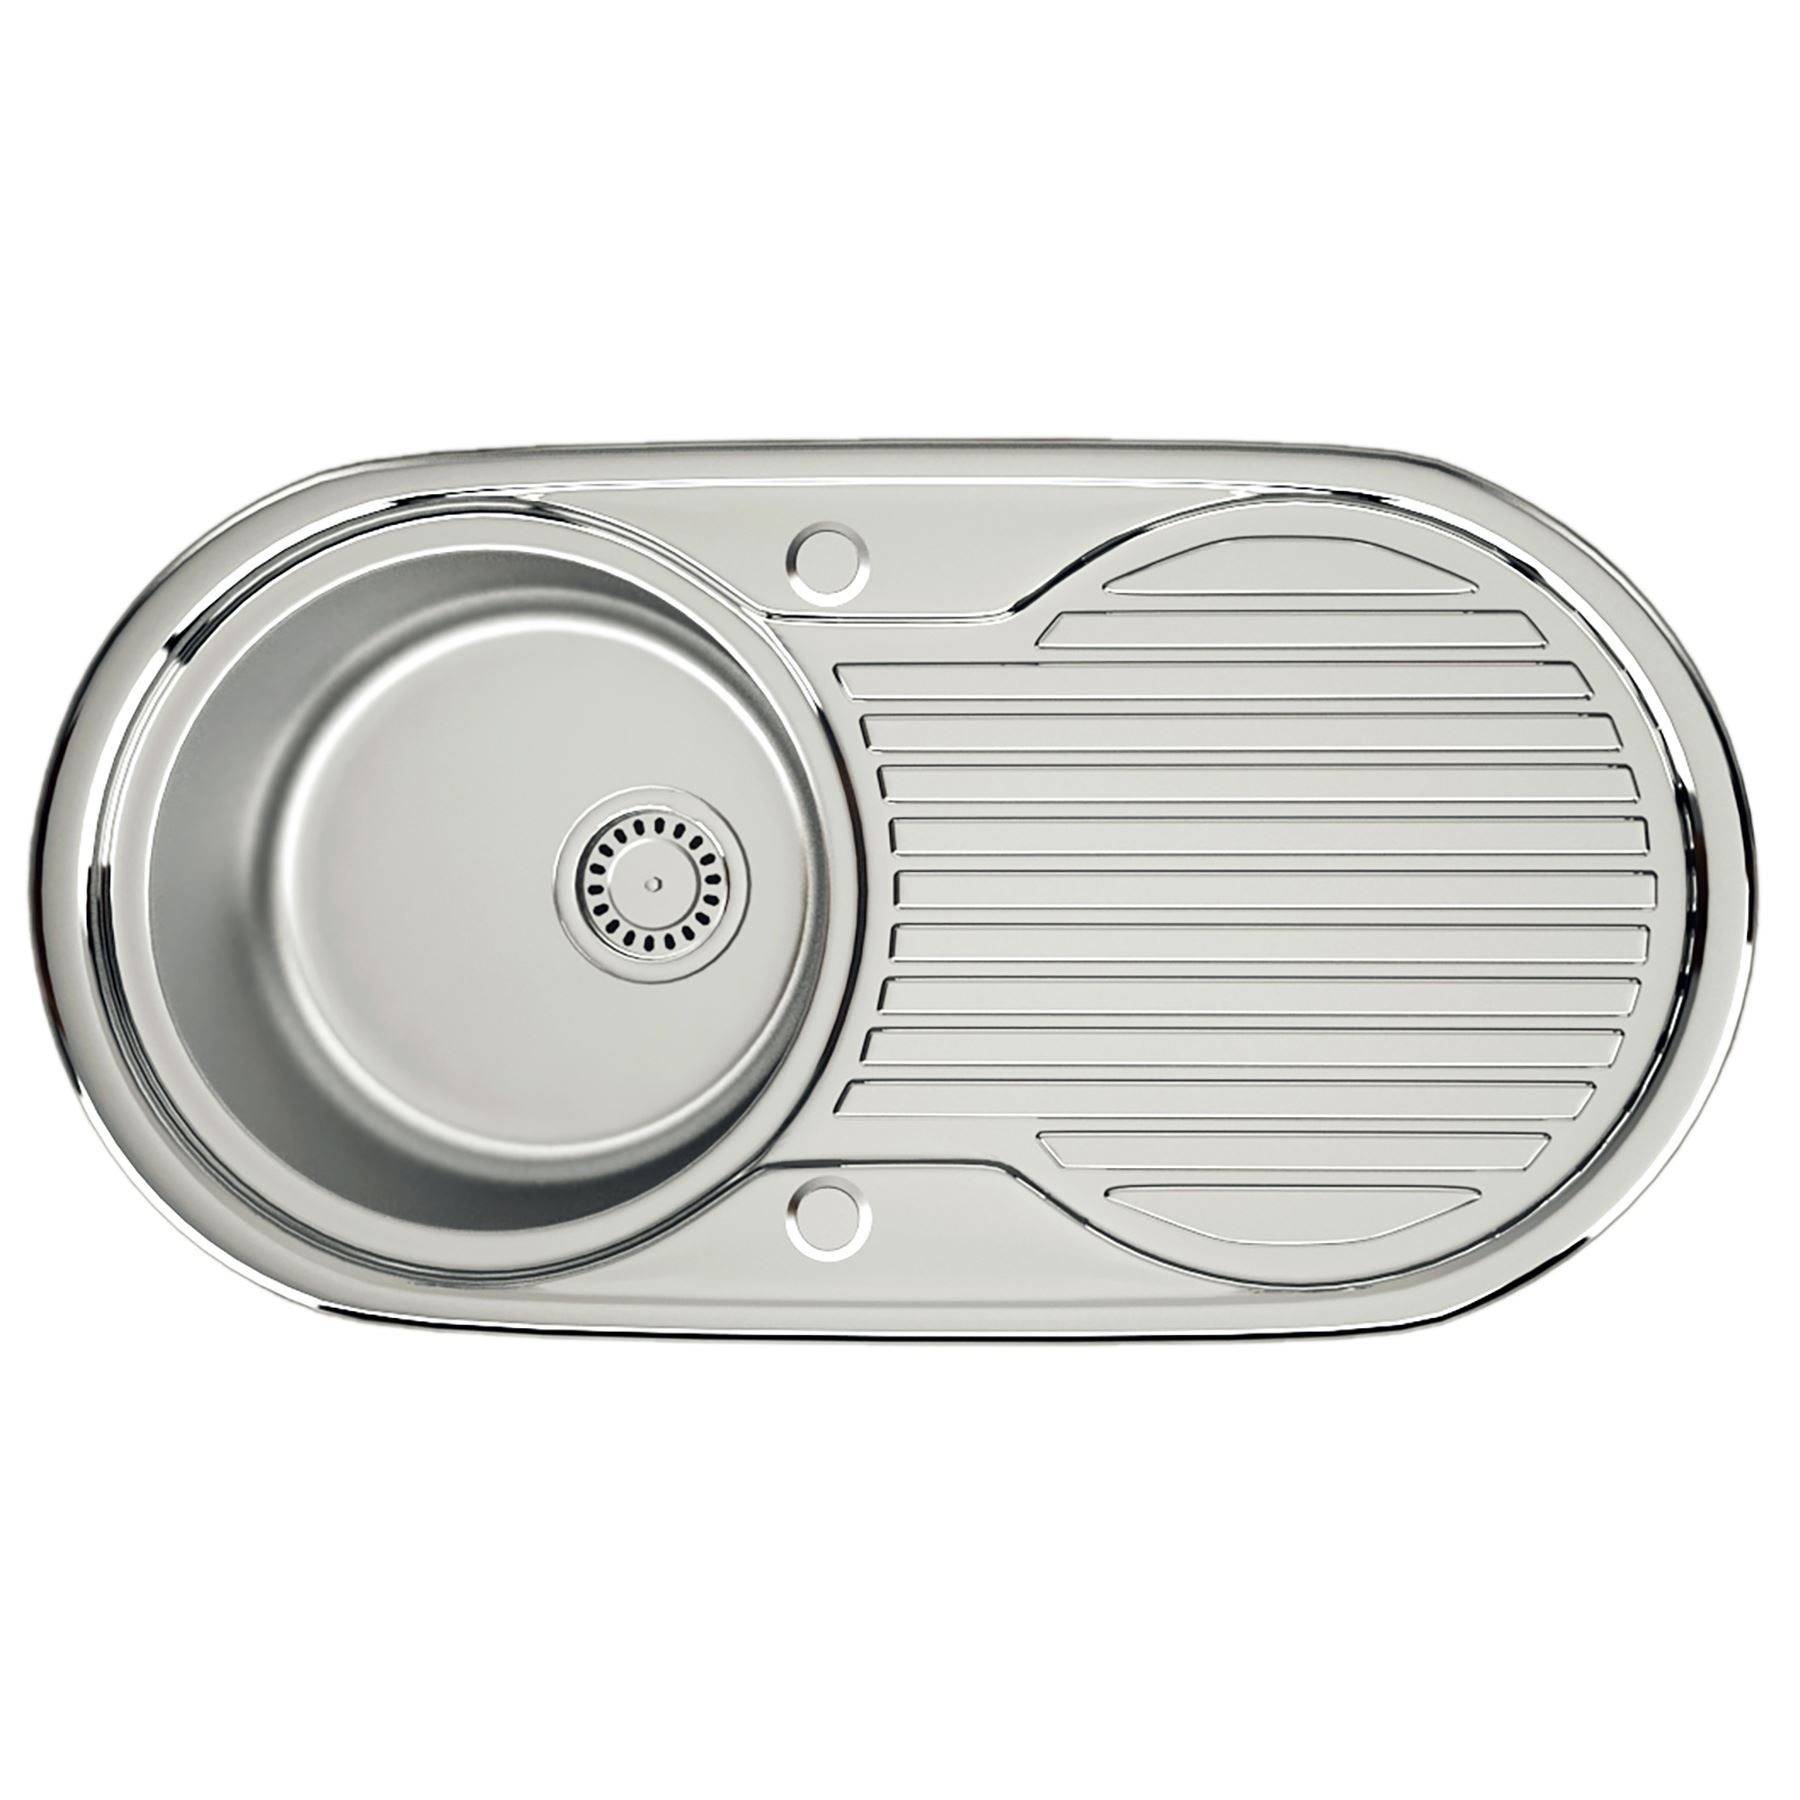 NEW-Stainless-Steel-Kitchen-Sink-Reversible-1-0-1-5-Bowl-Small-Round ...